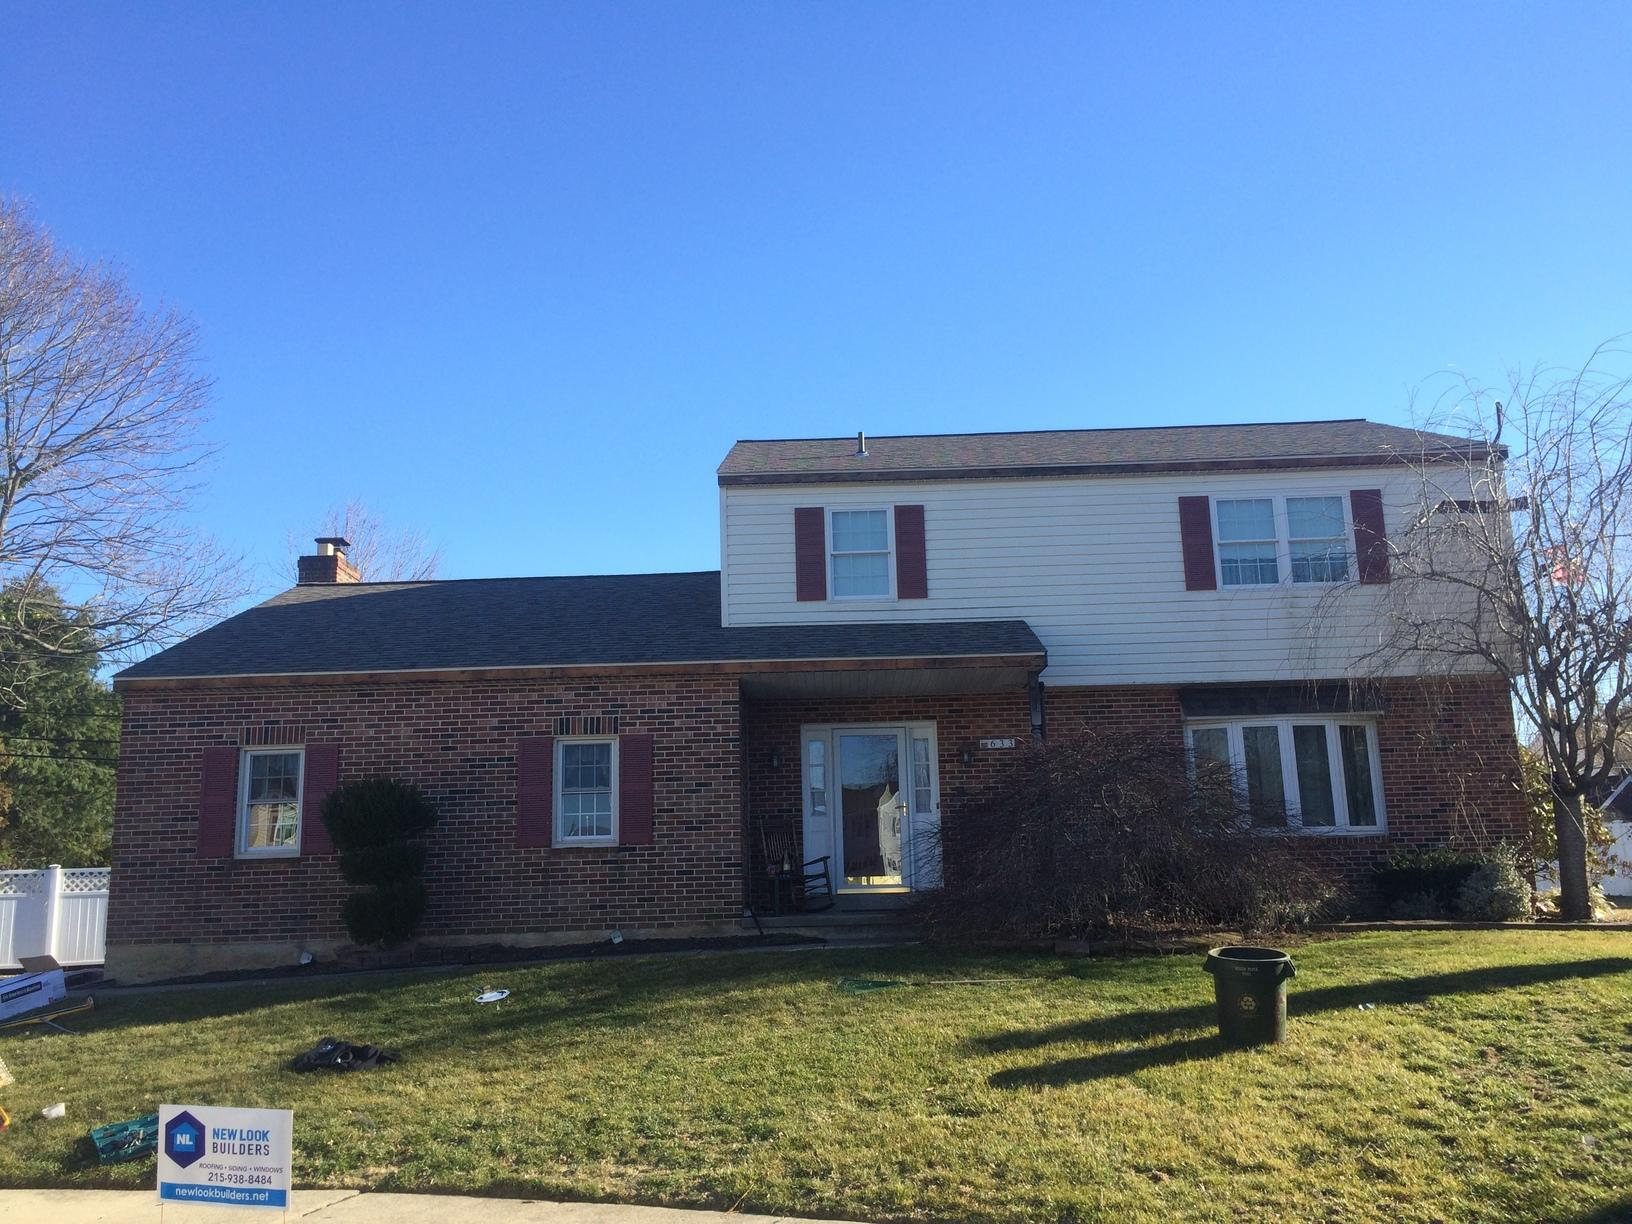 Owens Corning Roof Replacement in Folsom, PA